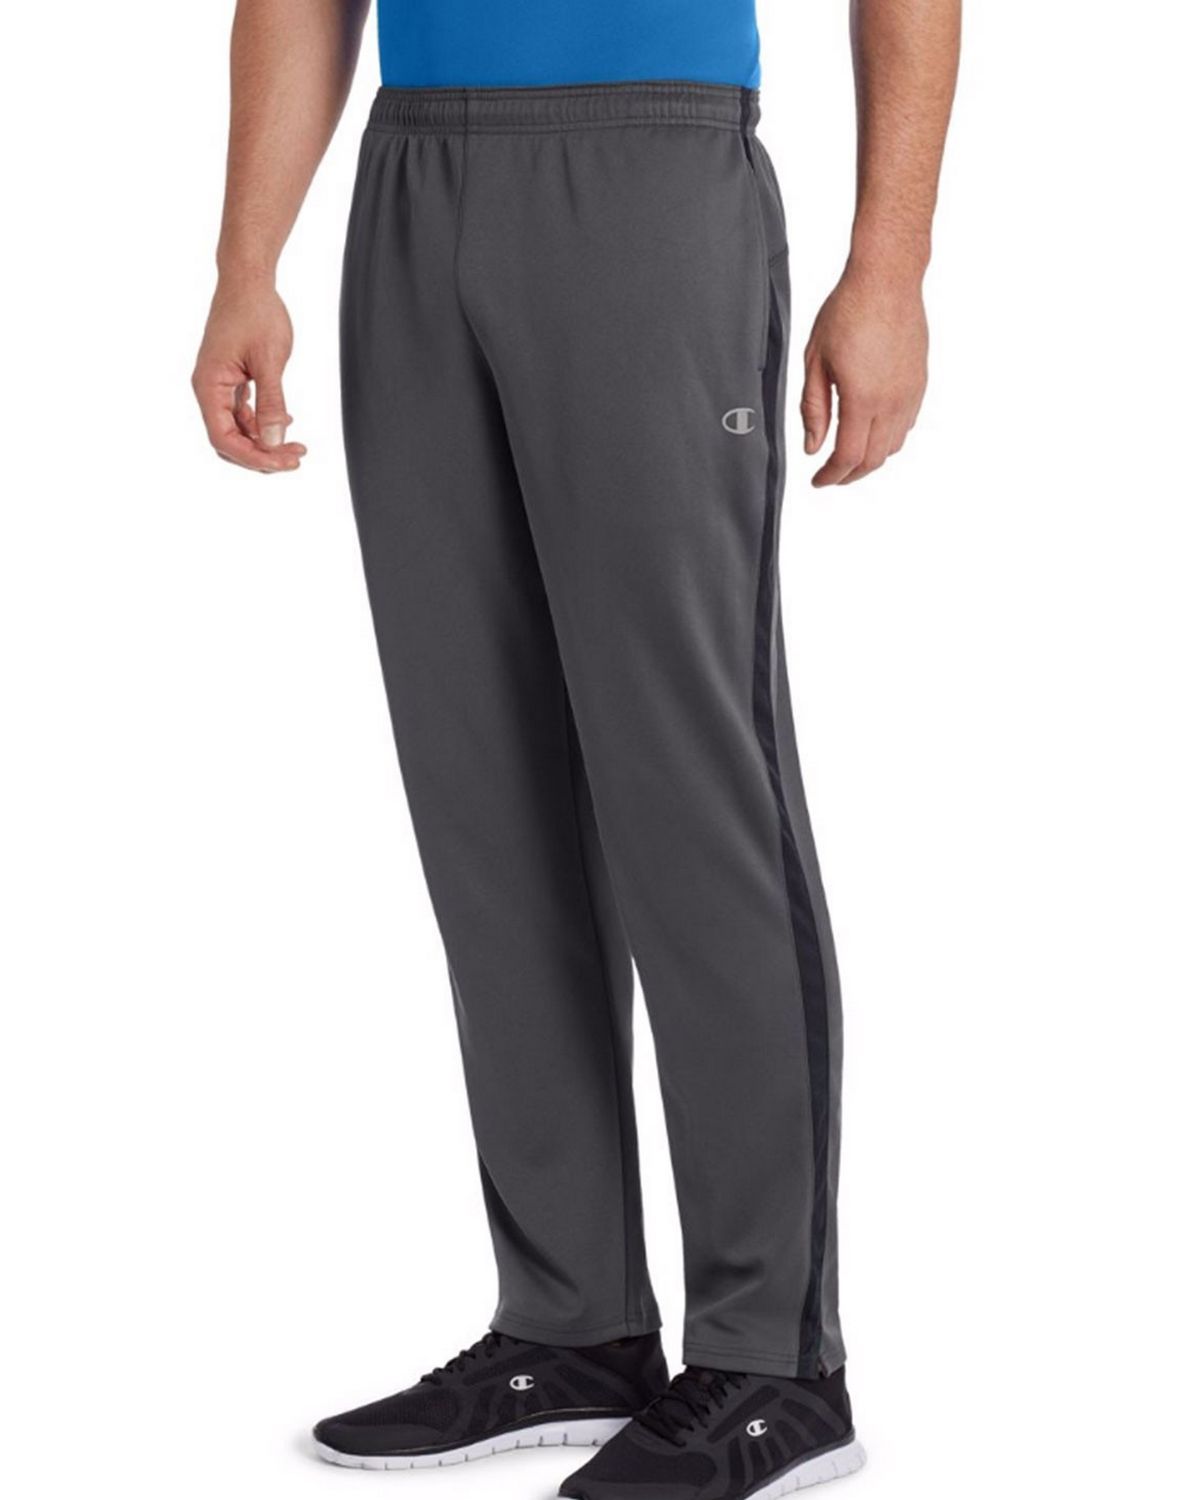 Champion P0551 Men's Vapor Select Training Pants - Shadow Grey/Black - S #vapor